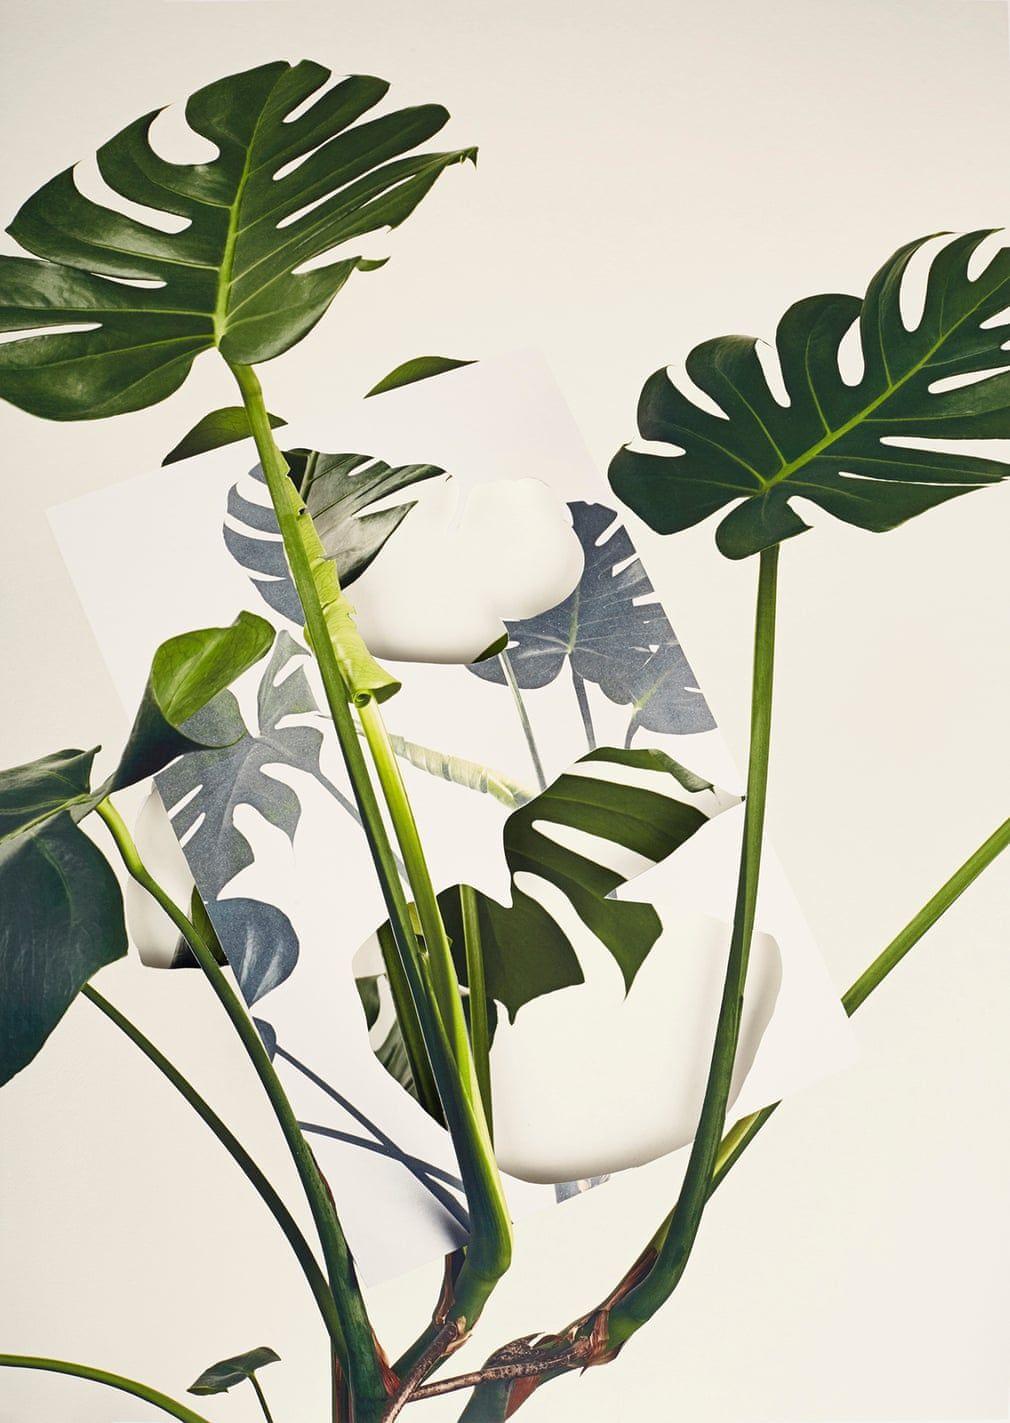 Fake leaves Alma Haser's fantasy plants in pictures